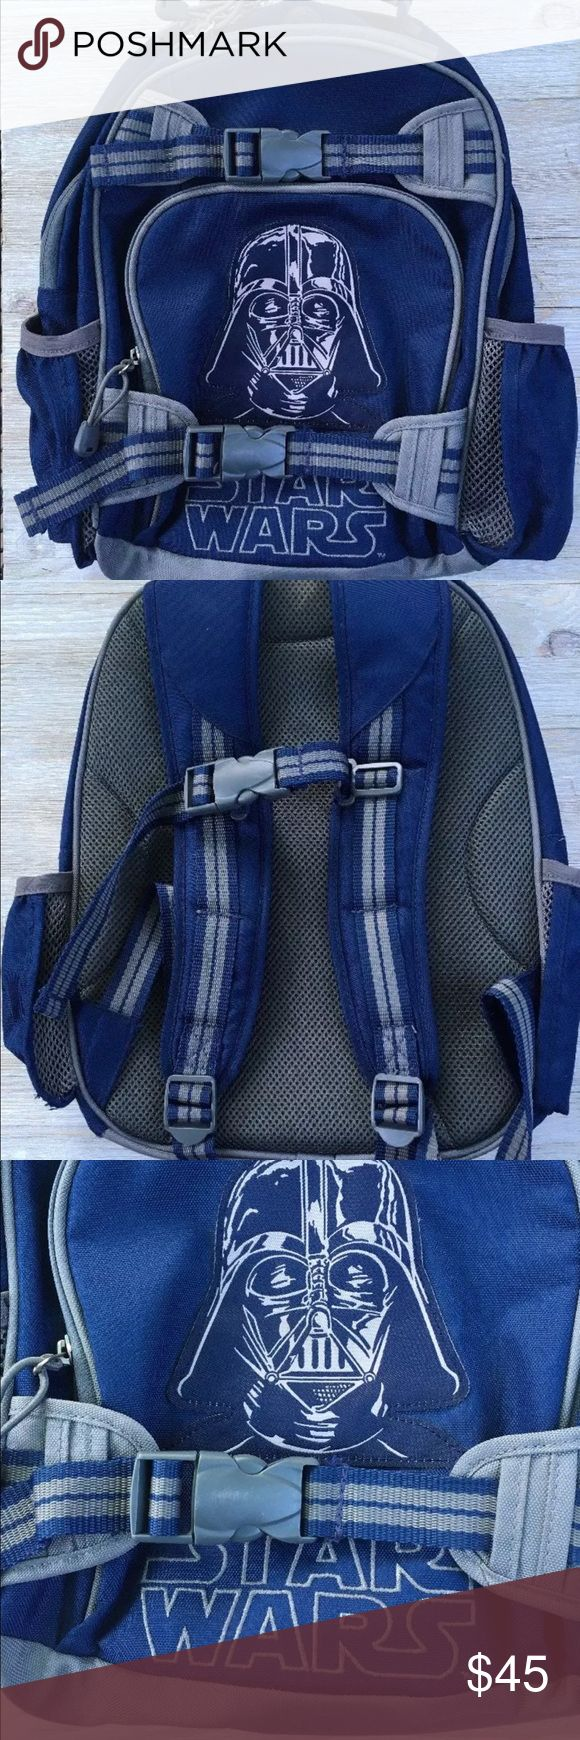 I just added this listing on Poshmark: Pottery Barn Star Wars Darth Vader backpack navy. #shopmycloset #poshmark #fashion #shopping #style #forsale #Pottery Barn Star Wars #Other